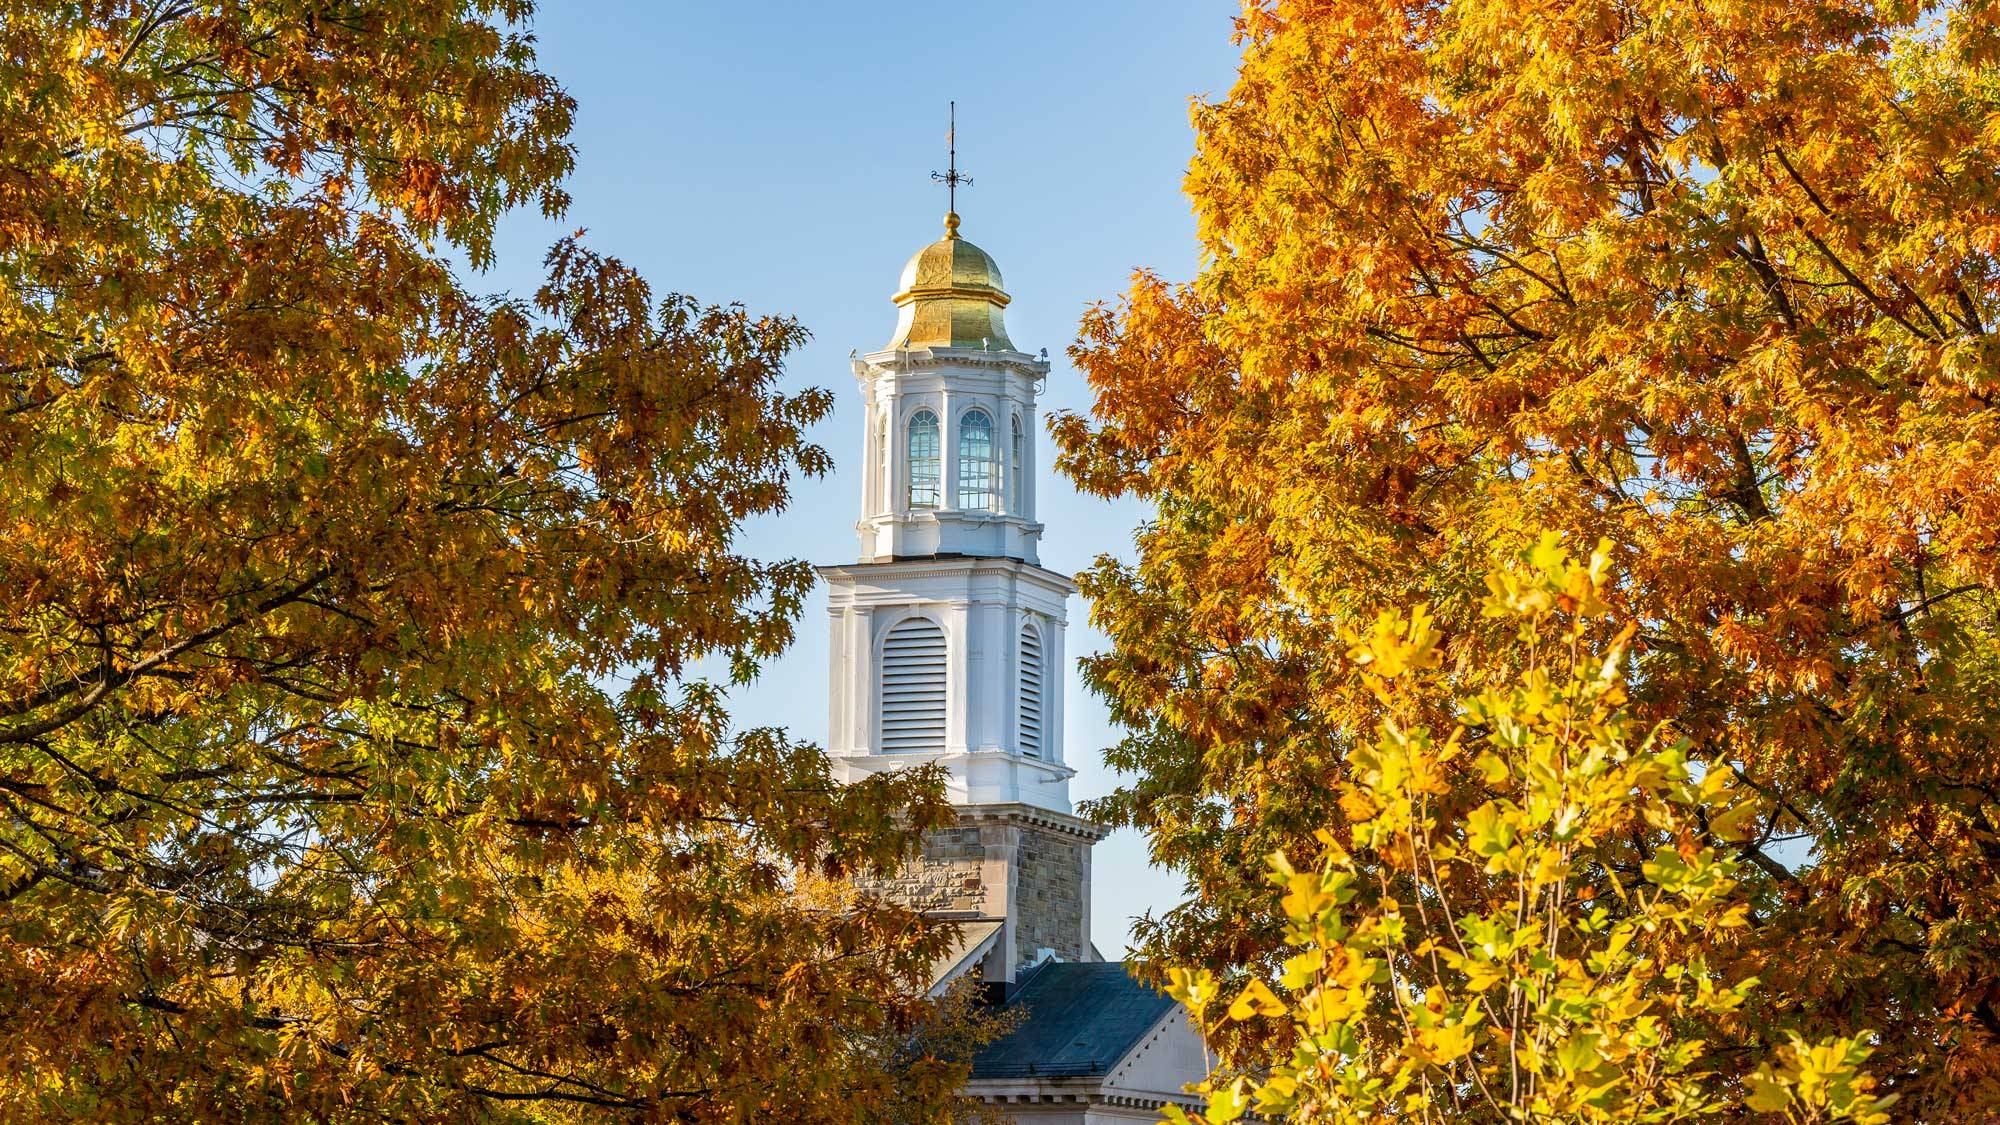 Chapel spire amid autumn foliage